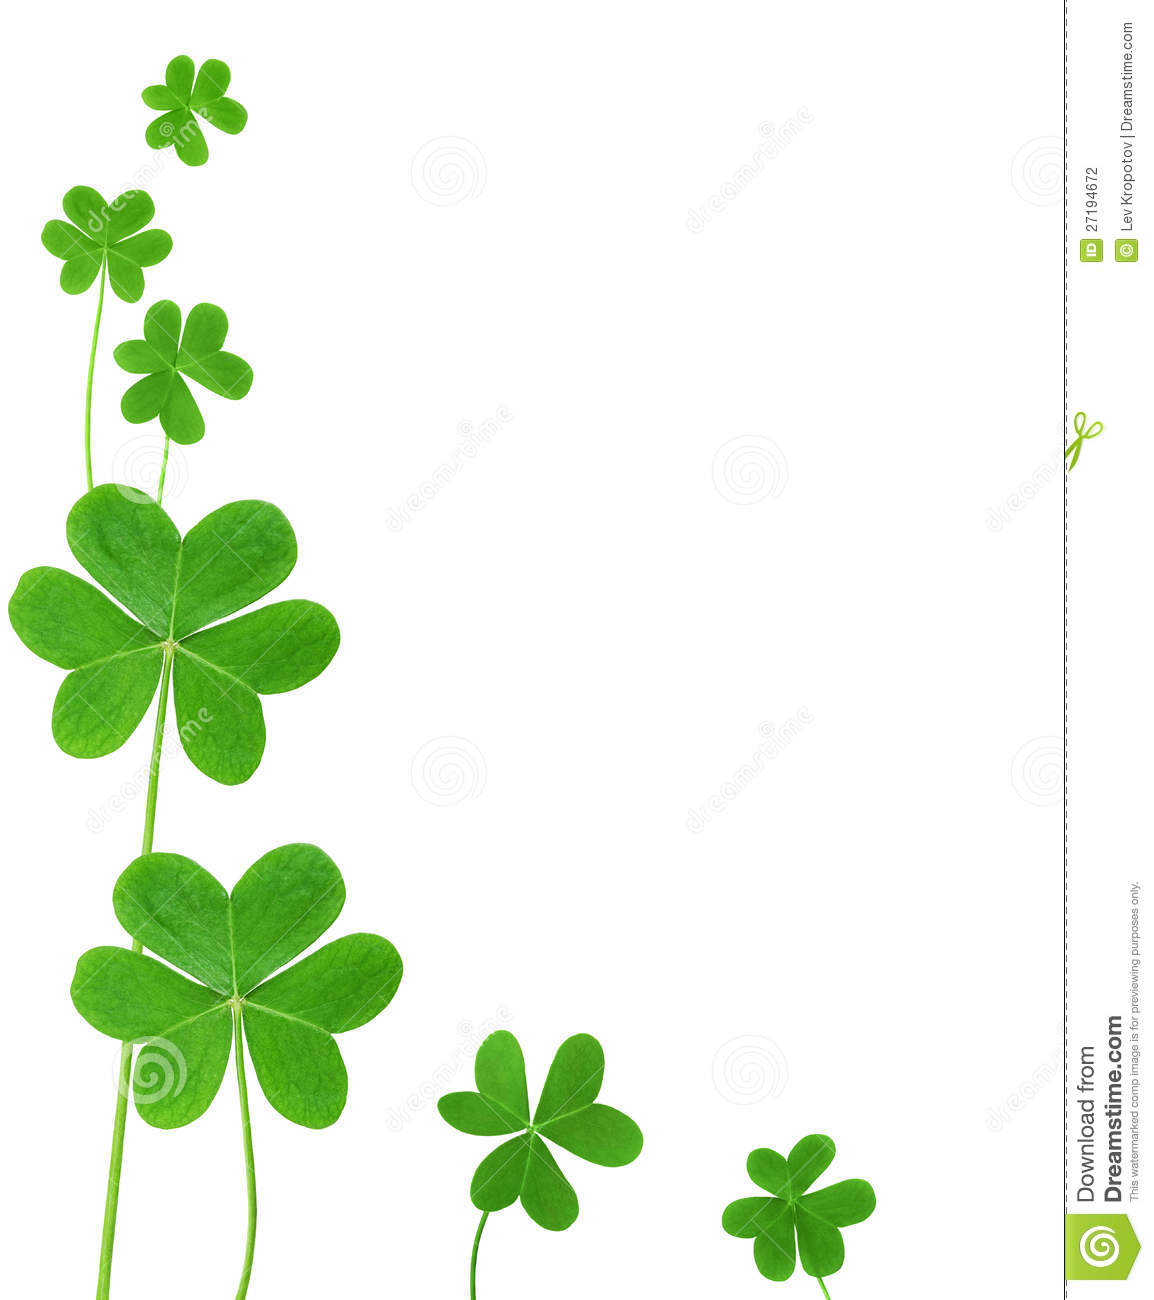 St. Patrick's clover border isolated on white background.